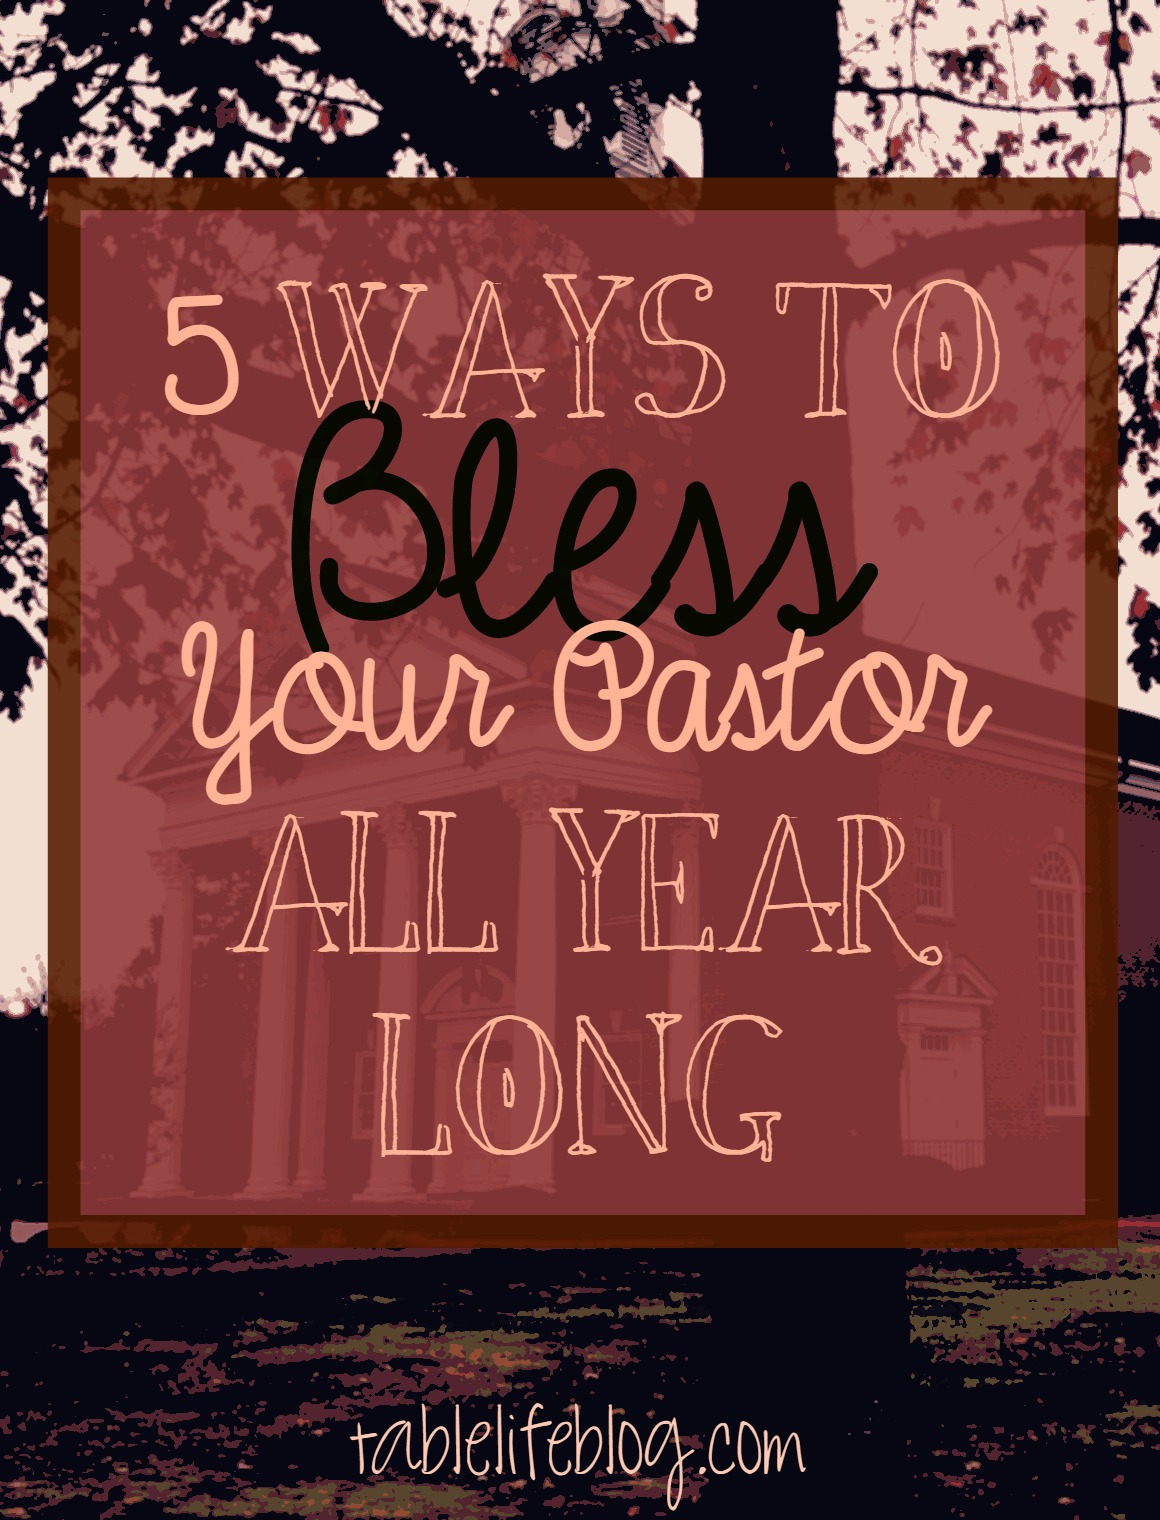 5 Ways to Bless Your Pastor